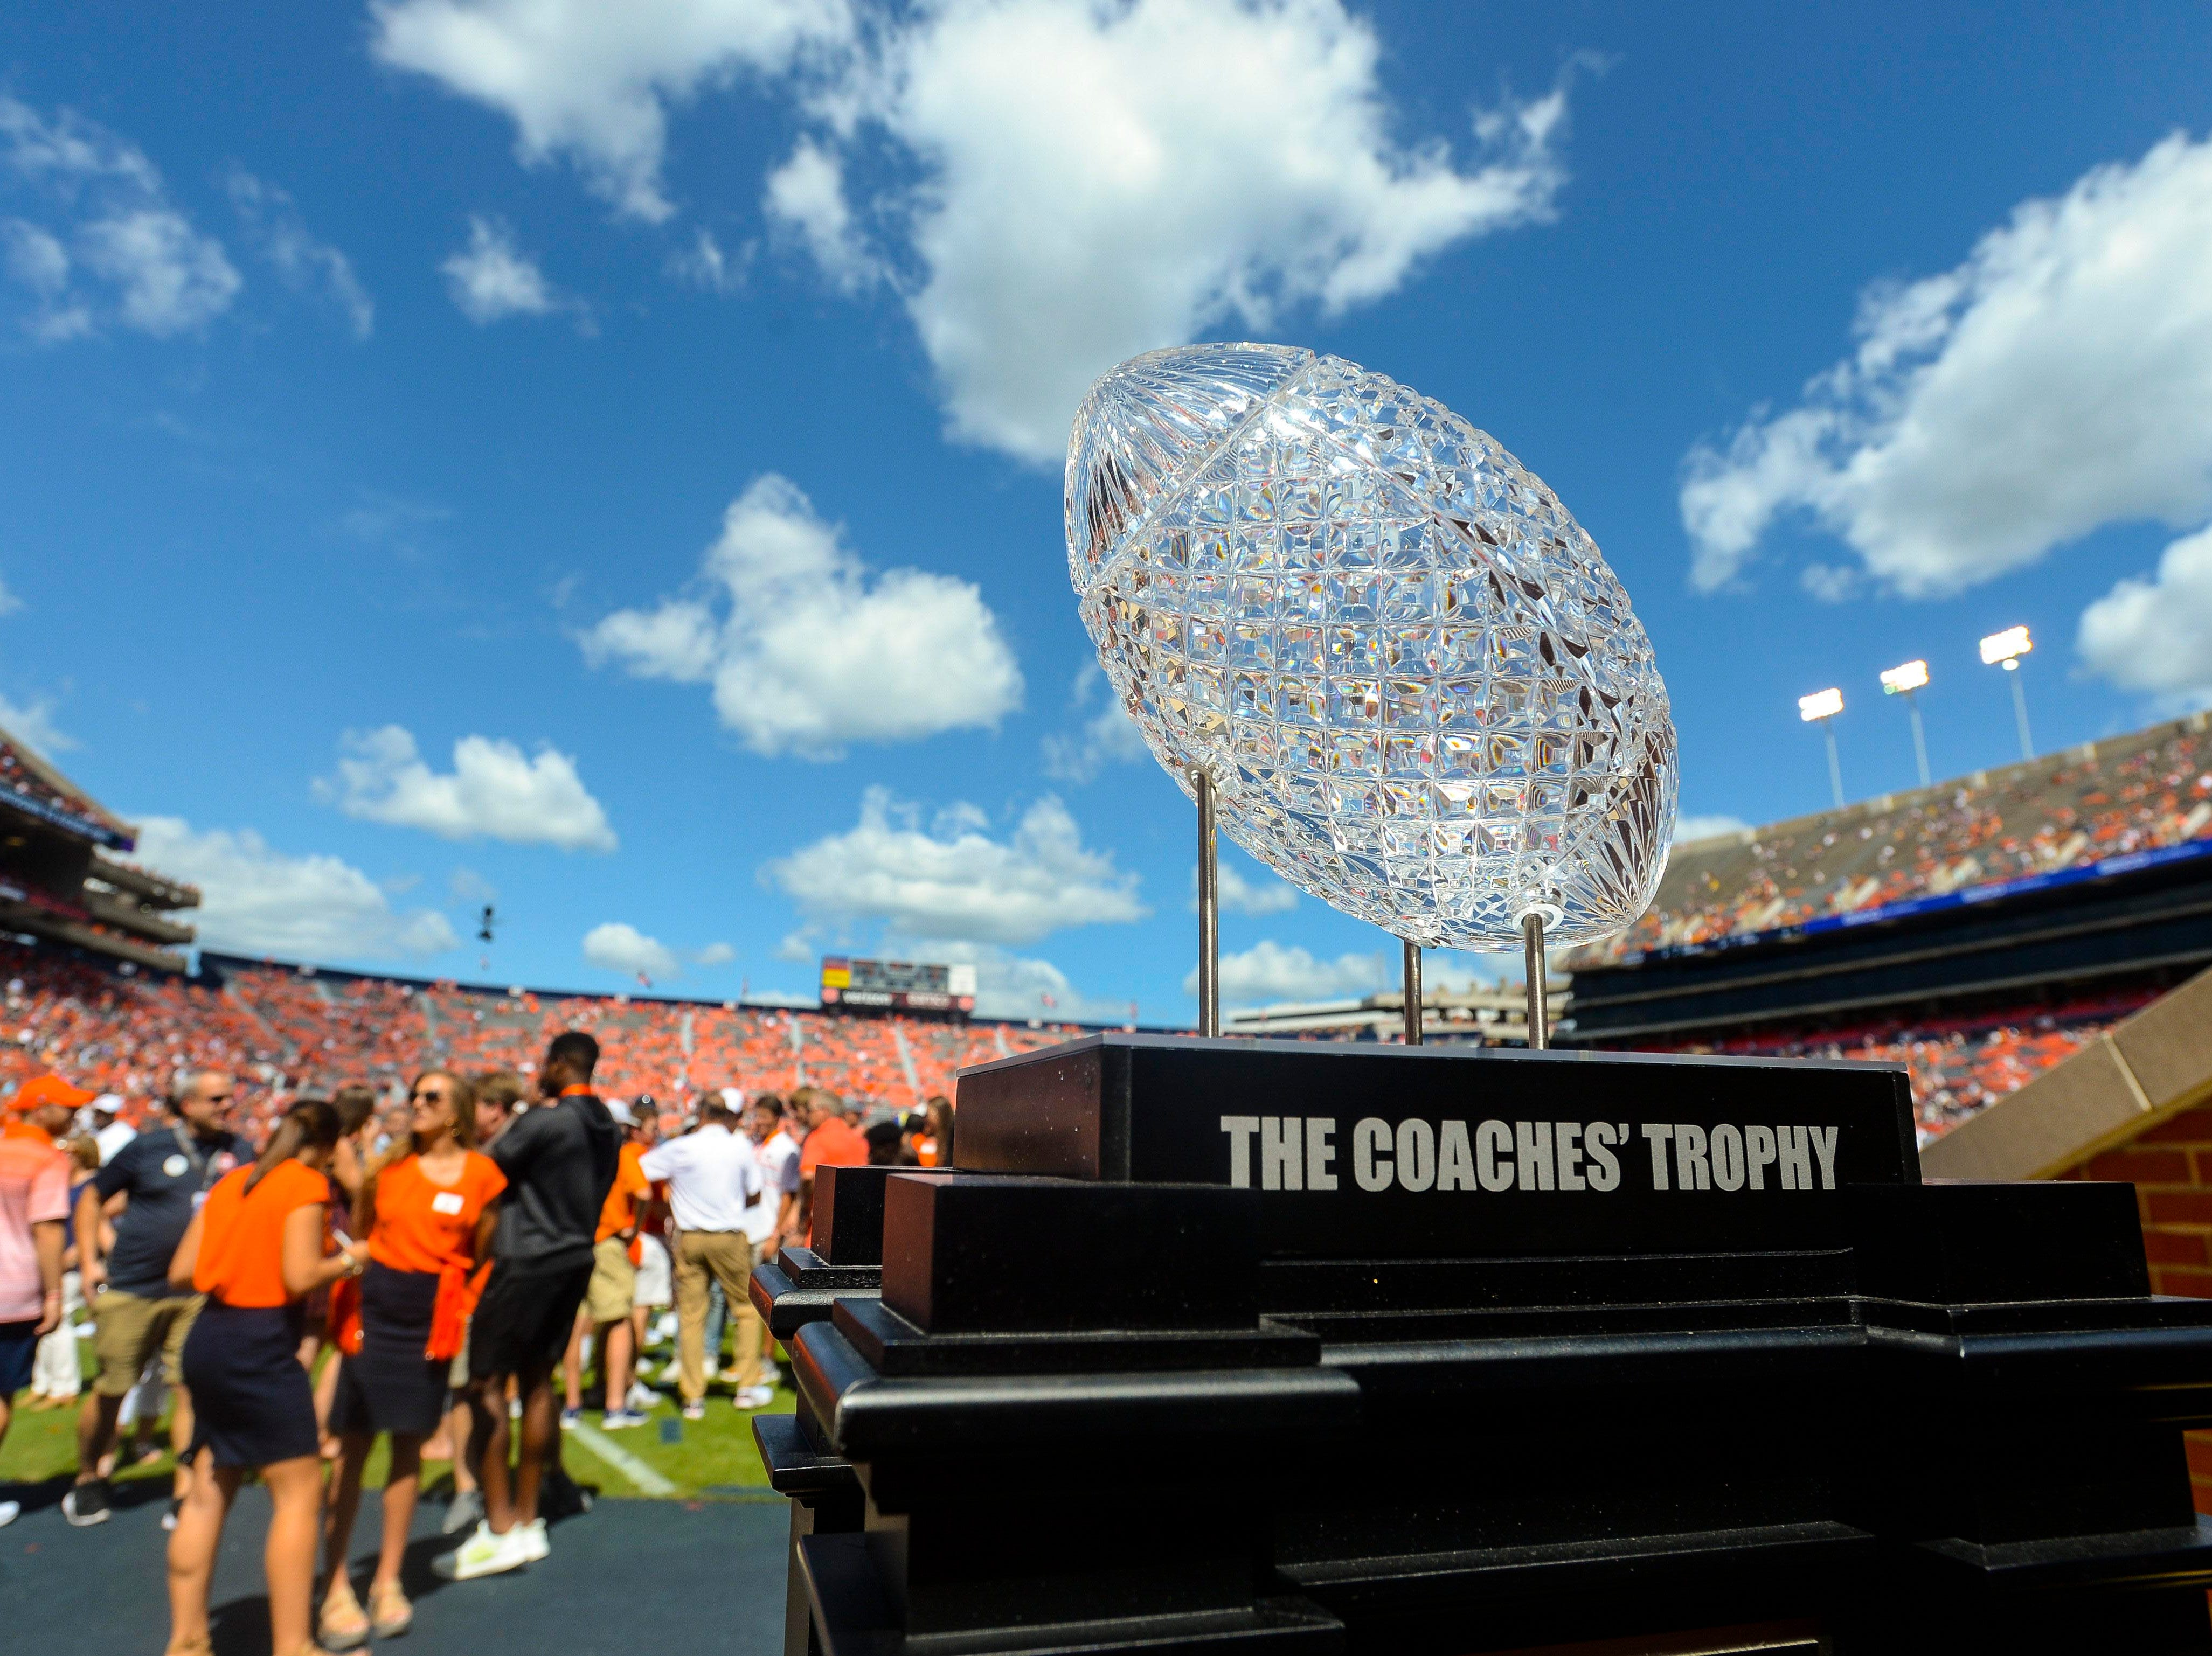 Sep 15, 2018; Auburn, AL, USA; A general view of the Coaches Trophy on display before the game between the LSU Tigers and Auburn Tigers at Jordan-Hare Stadium. Mandatory Credit: Julie Bennett-USA TODAY Sports